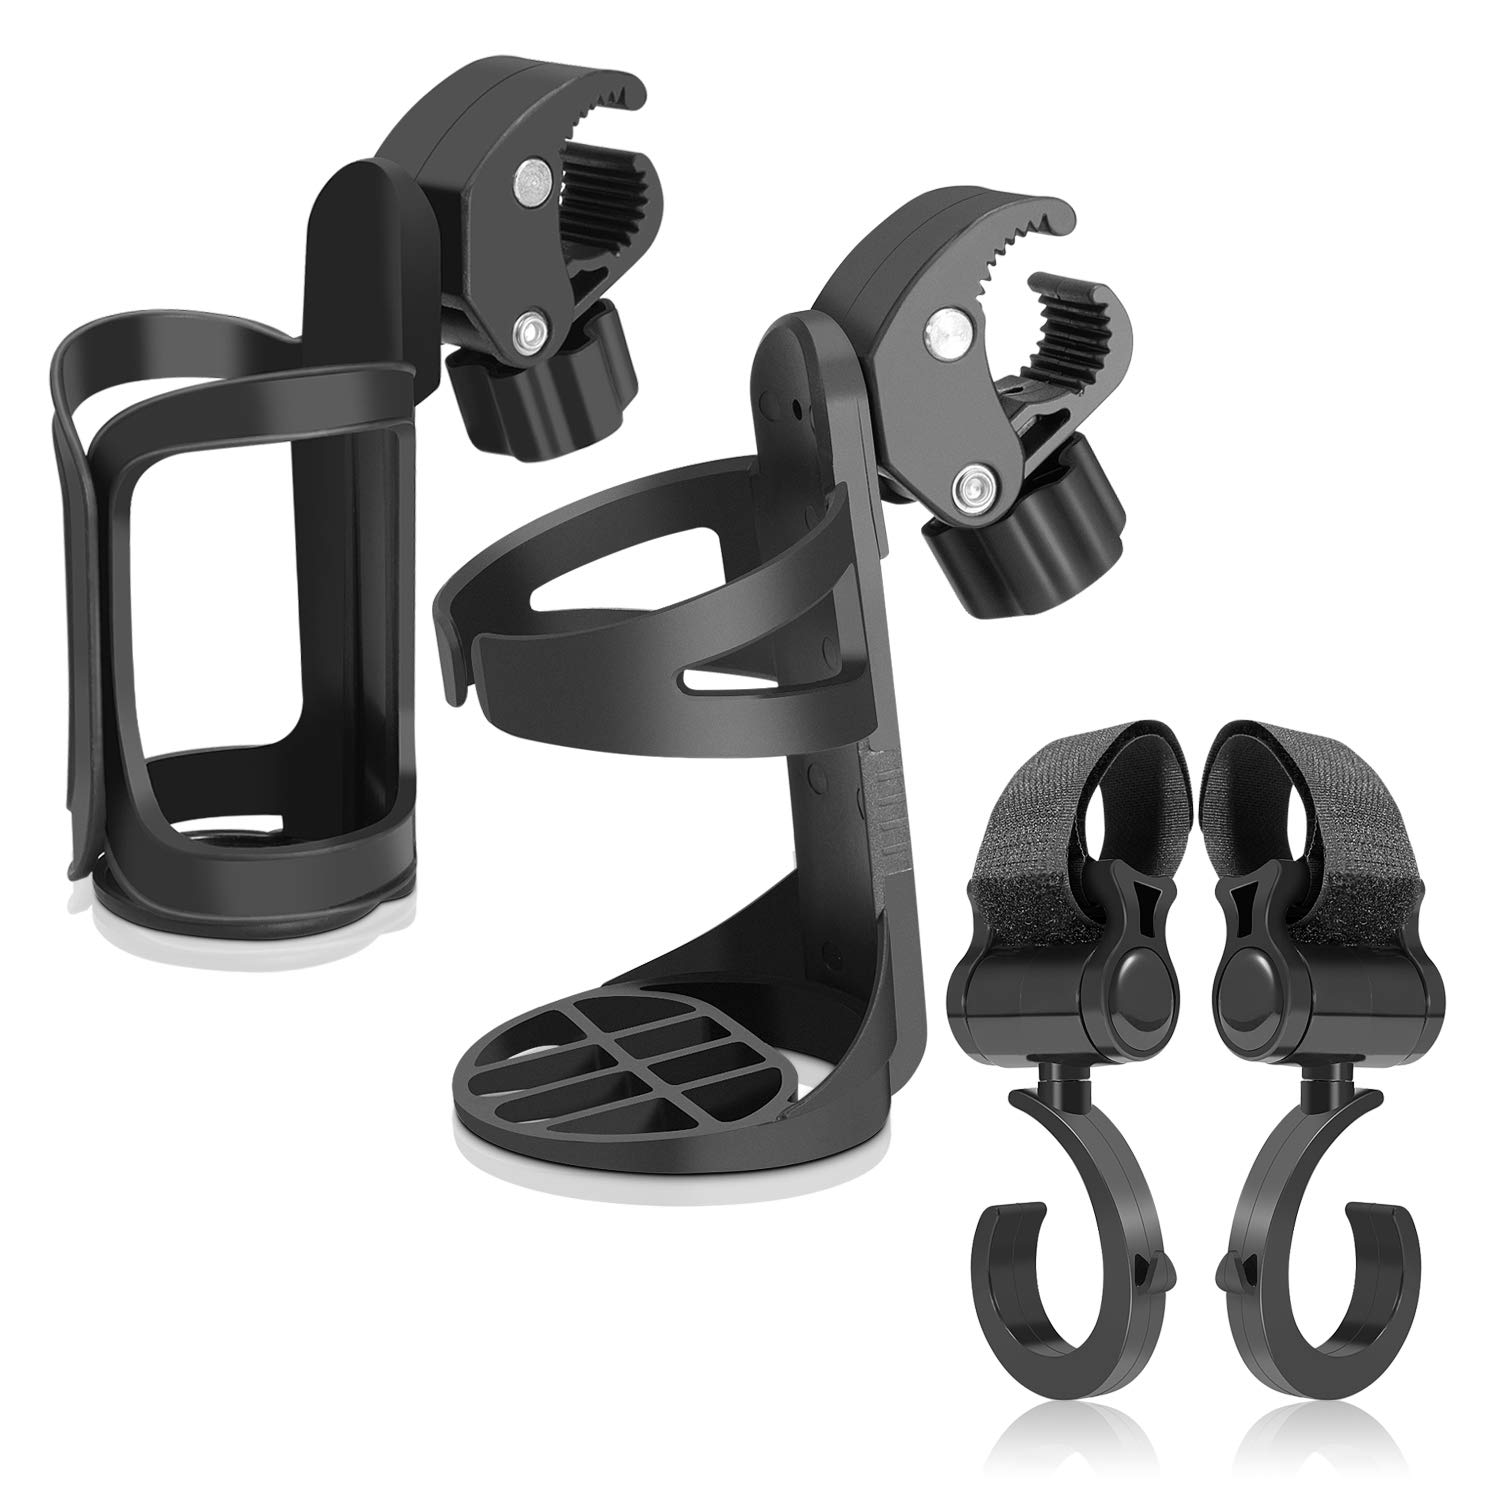 Bike Cup/Stroller Bottle Holders Universal 360 Degrees Rotation Drink Holder for Baby Stroller/Pushchair Bicycle Wheelchair and Motorcycle with 2 Baby Stroller (Black)